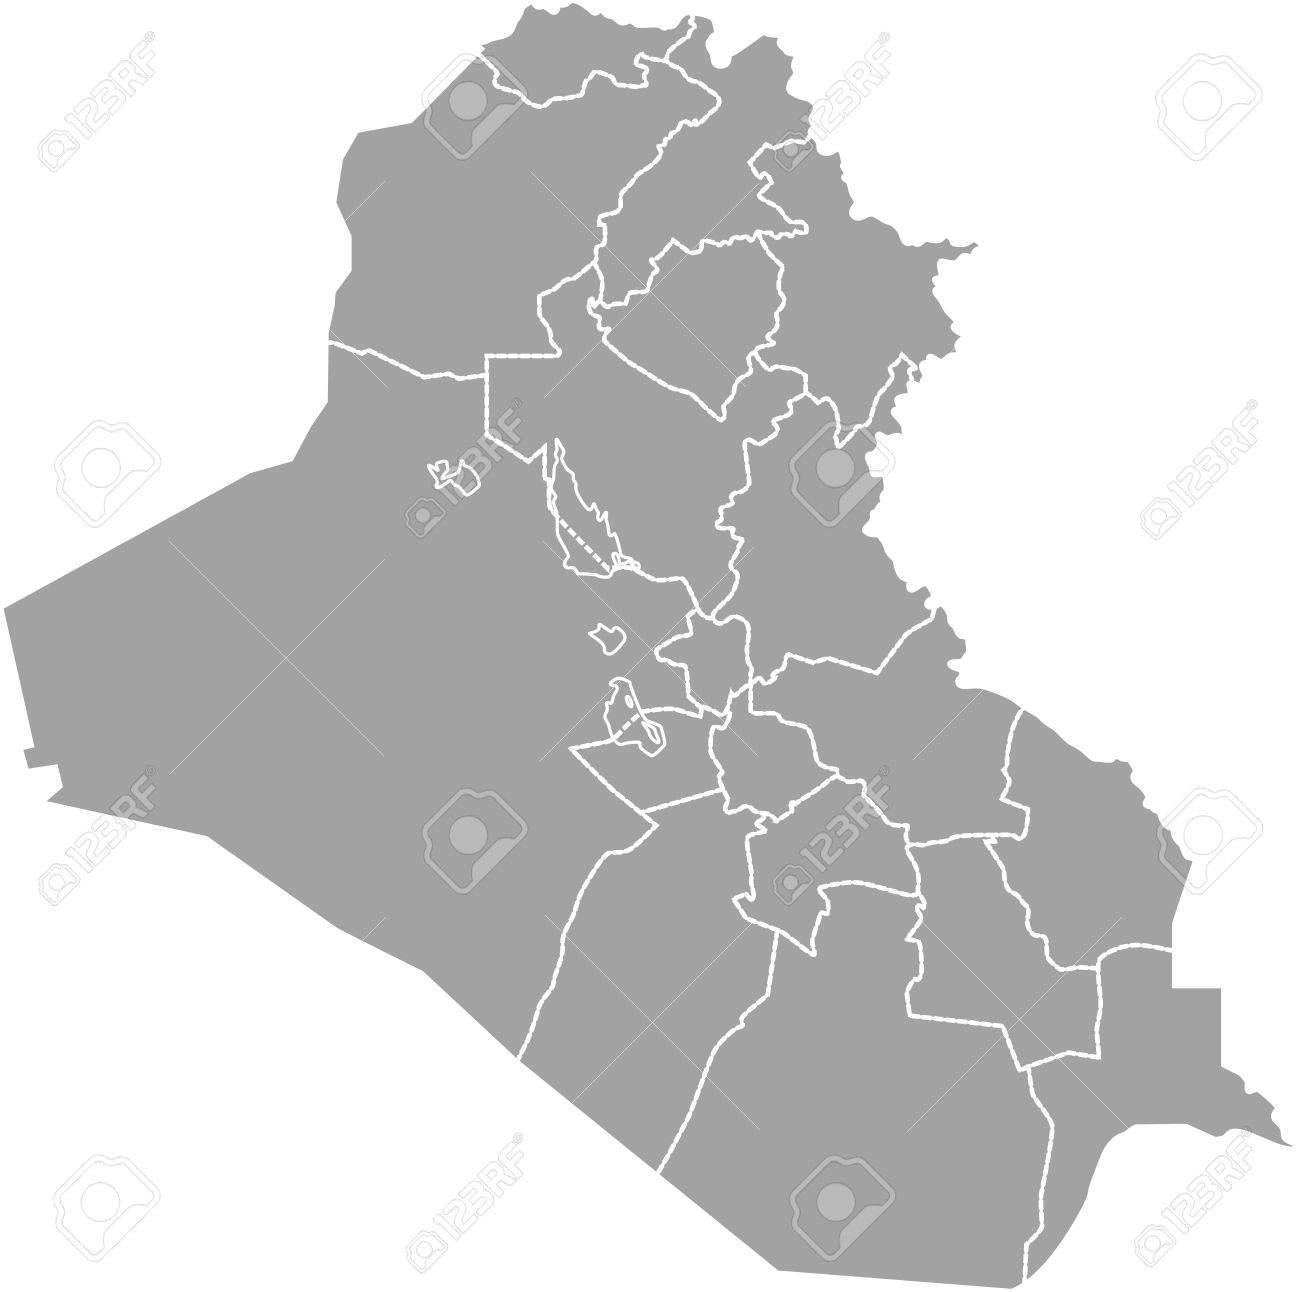 Iraq map outline vector with borders of provinces or states